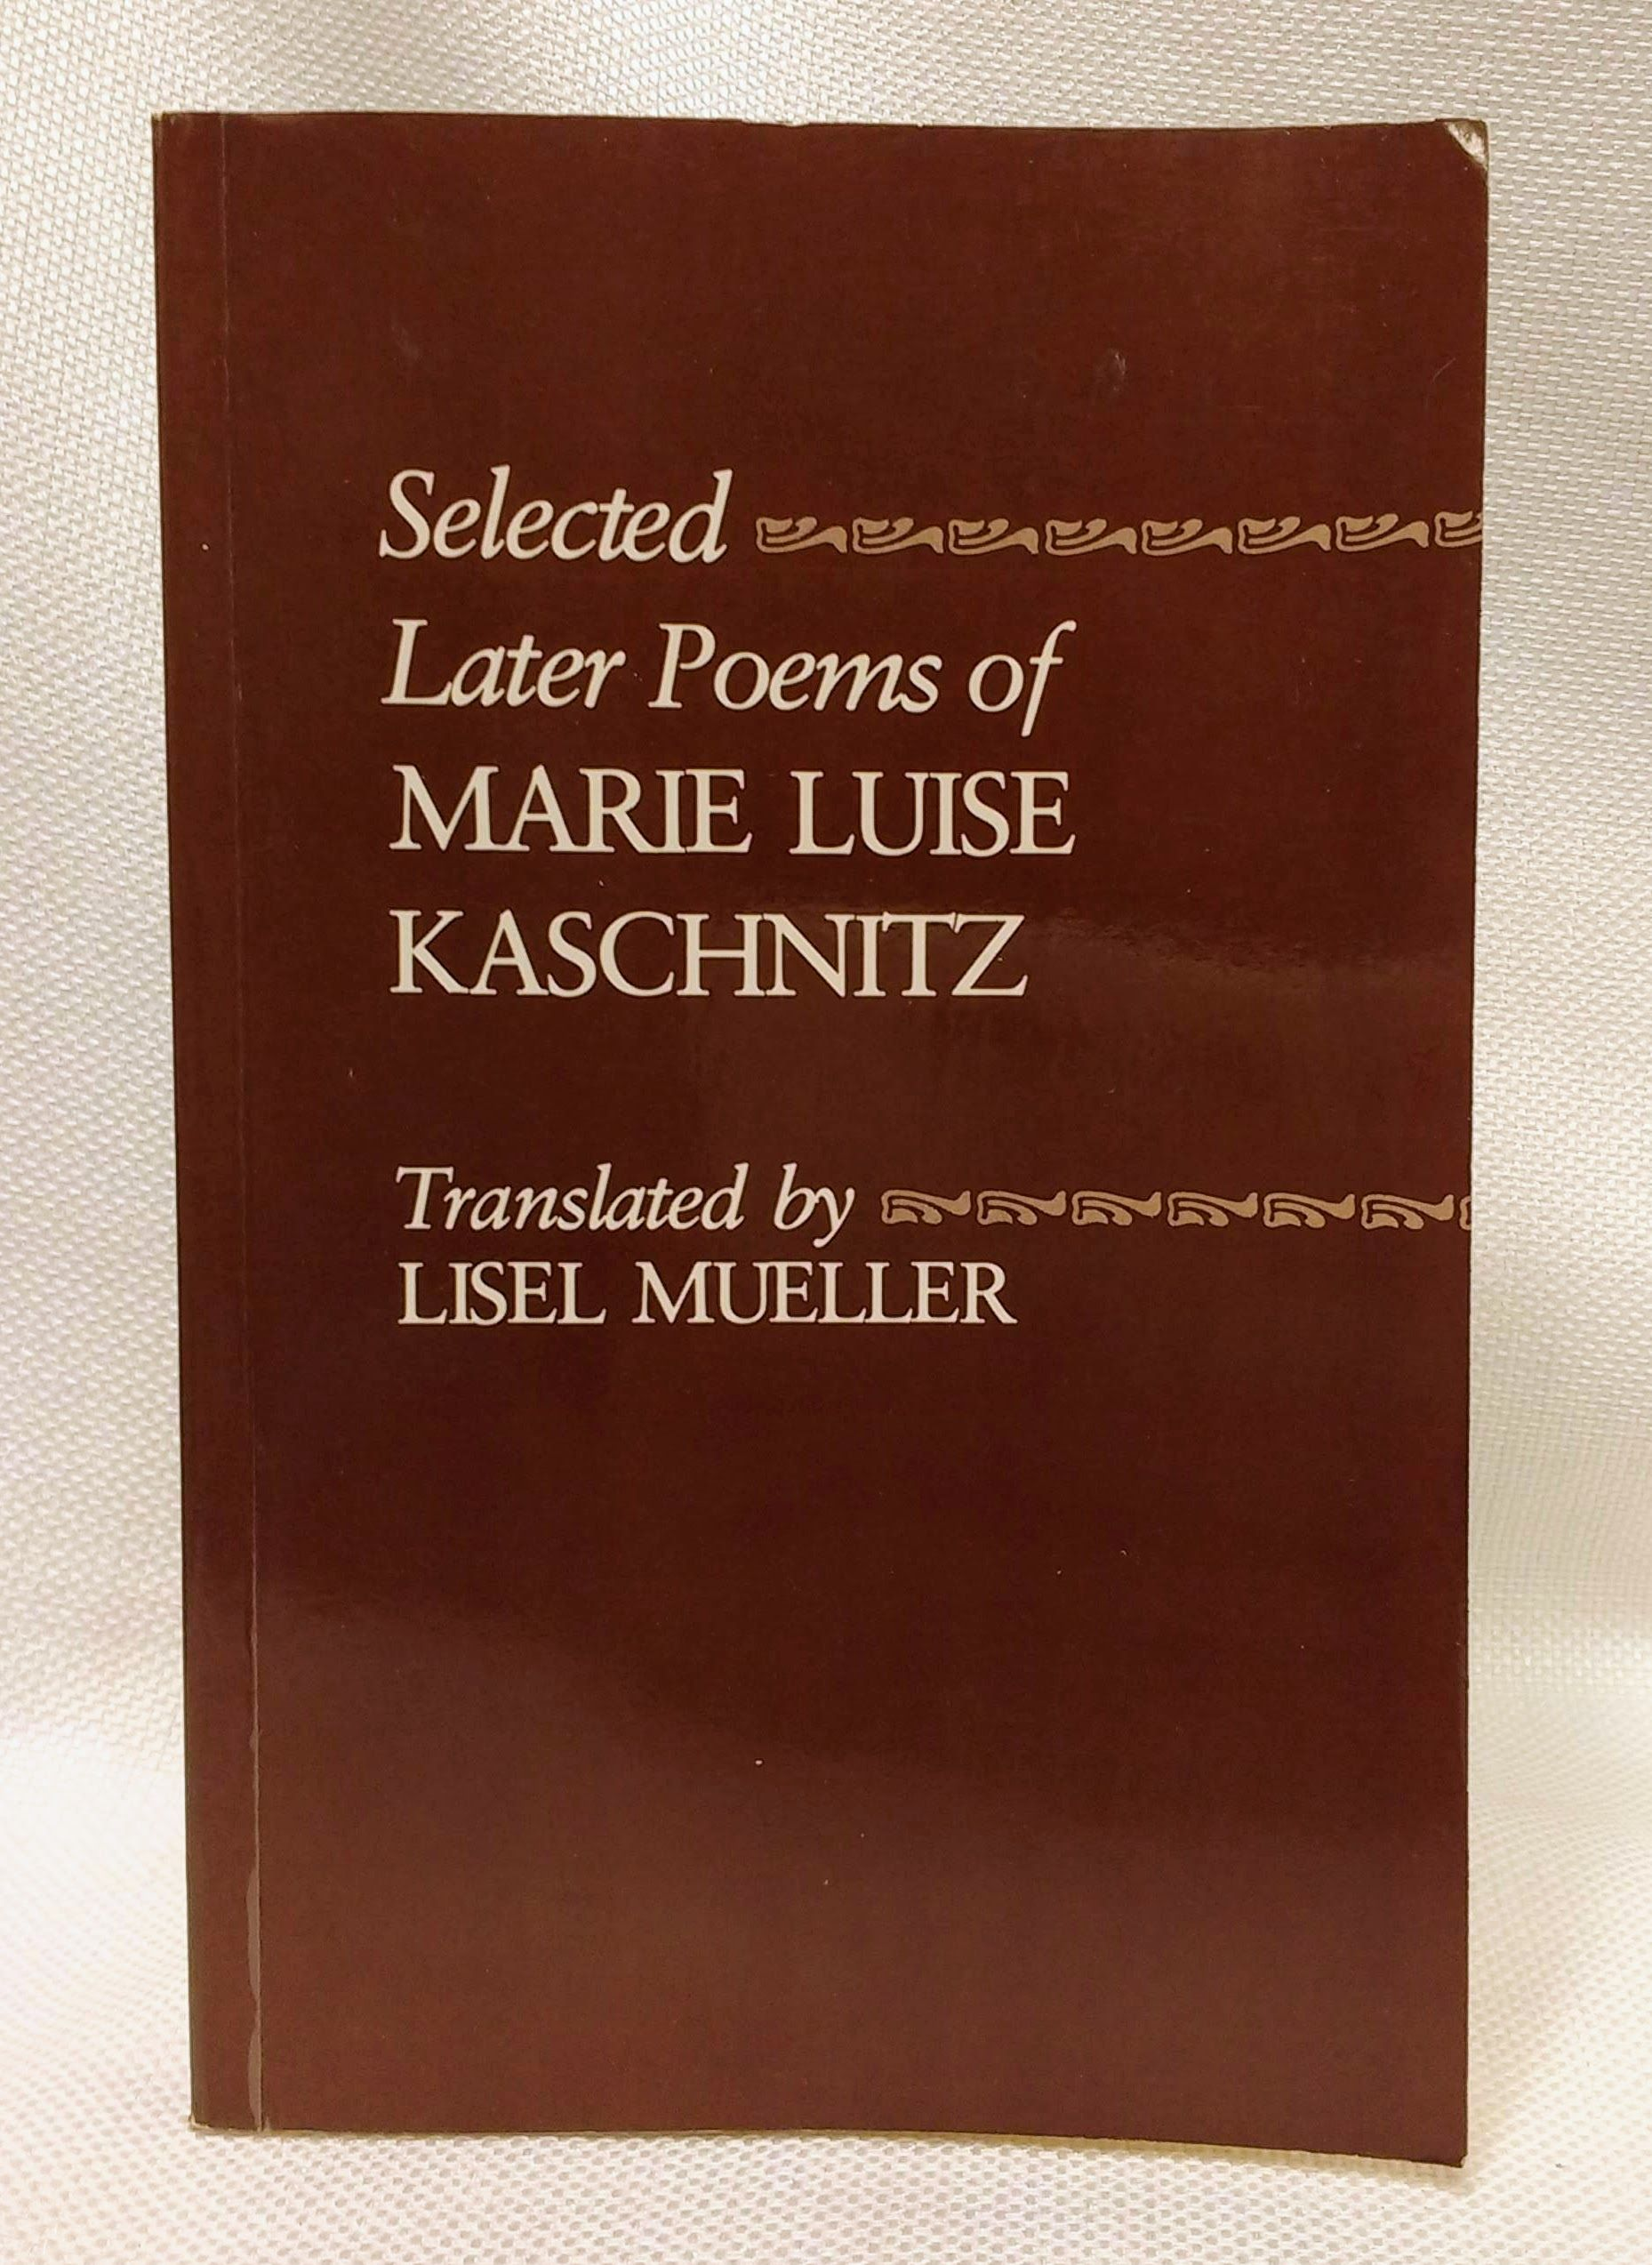 Selected Later Poems of Marie Luise Kaschnitz (The Lockert Library of Poetry in Translation), Kaschnitz, Marie Luise; Mueller, Lisel [Translator]